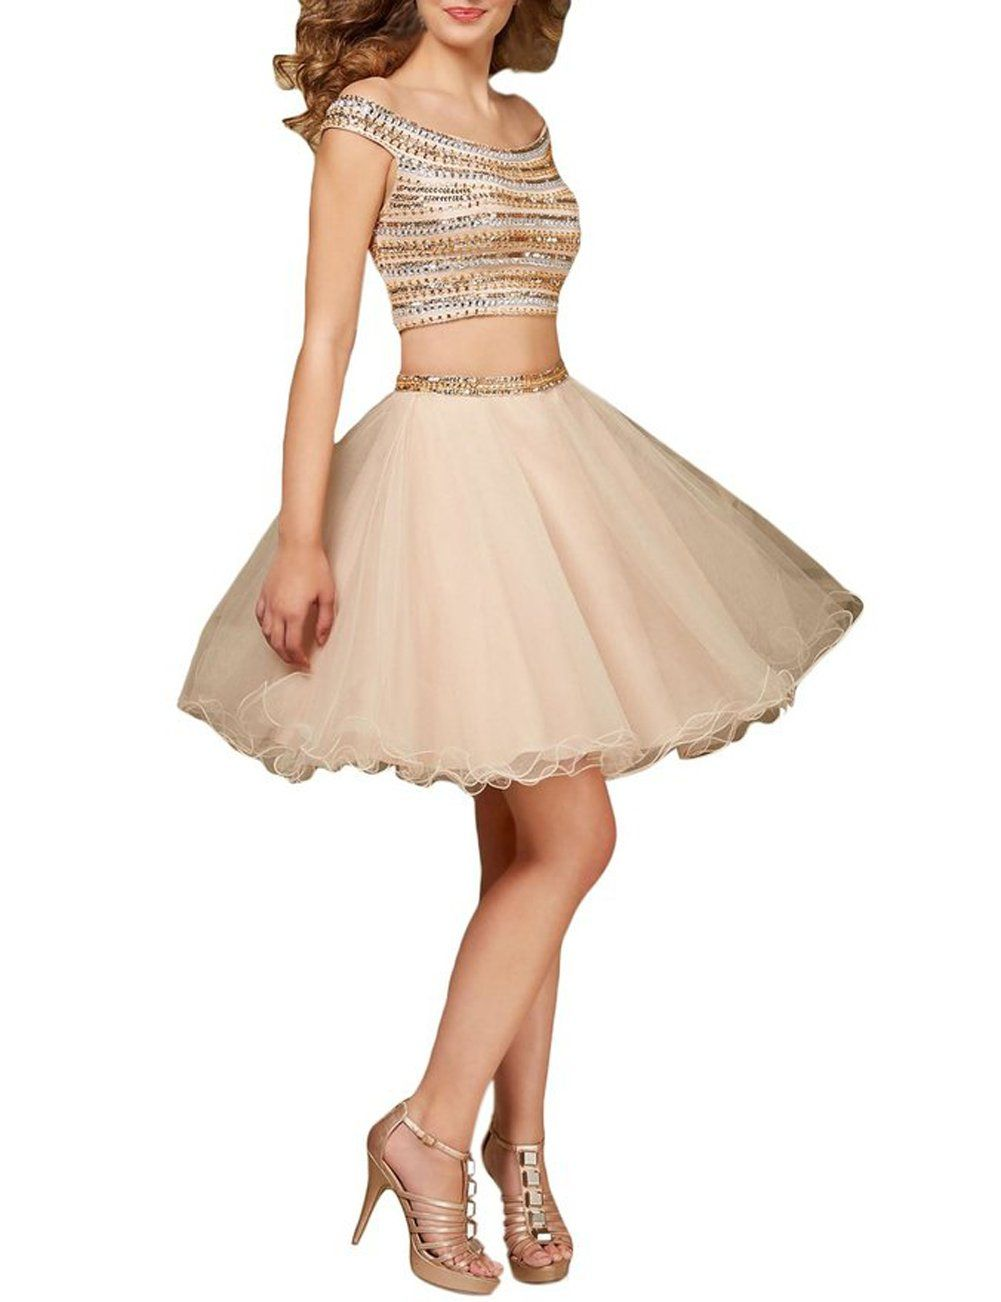 Dobelove womenus pieces mini dance prom skirt homecoming dress for